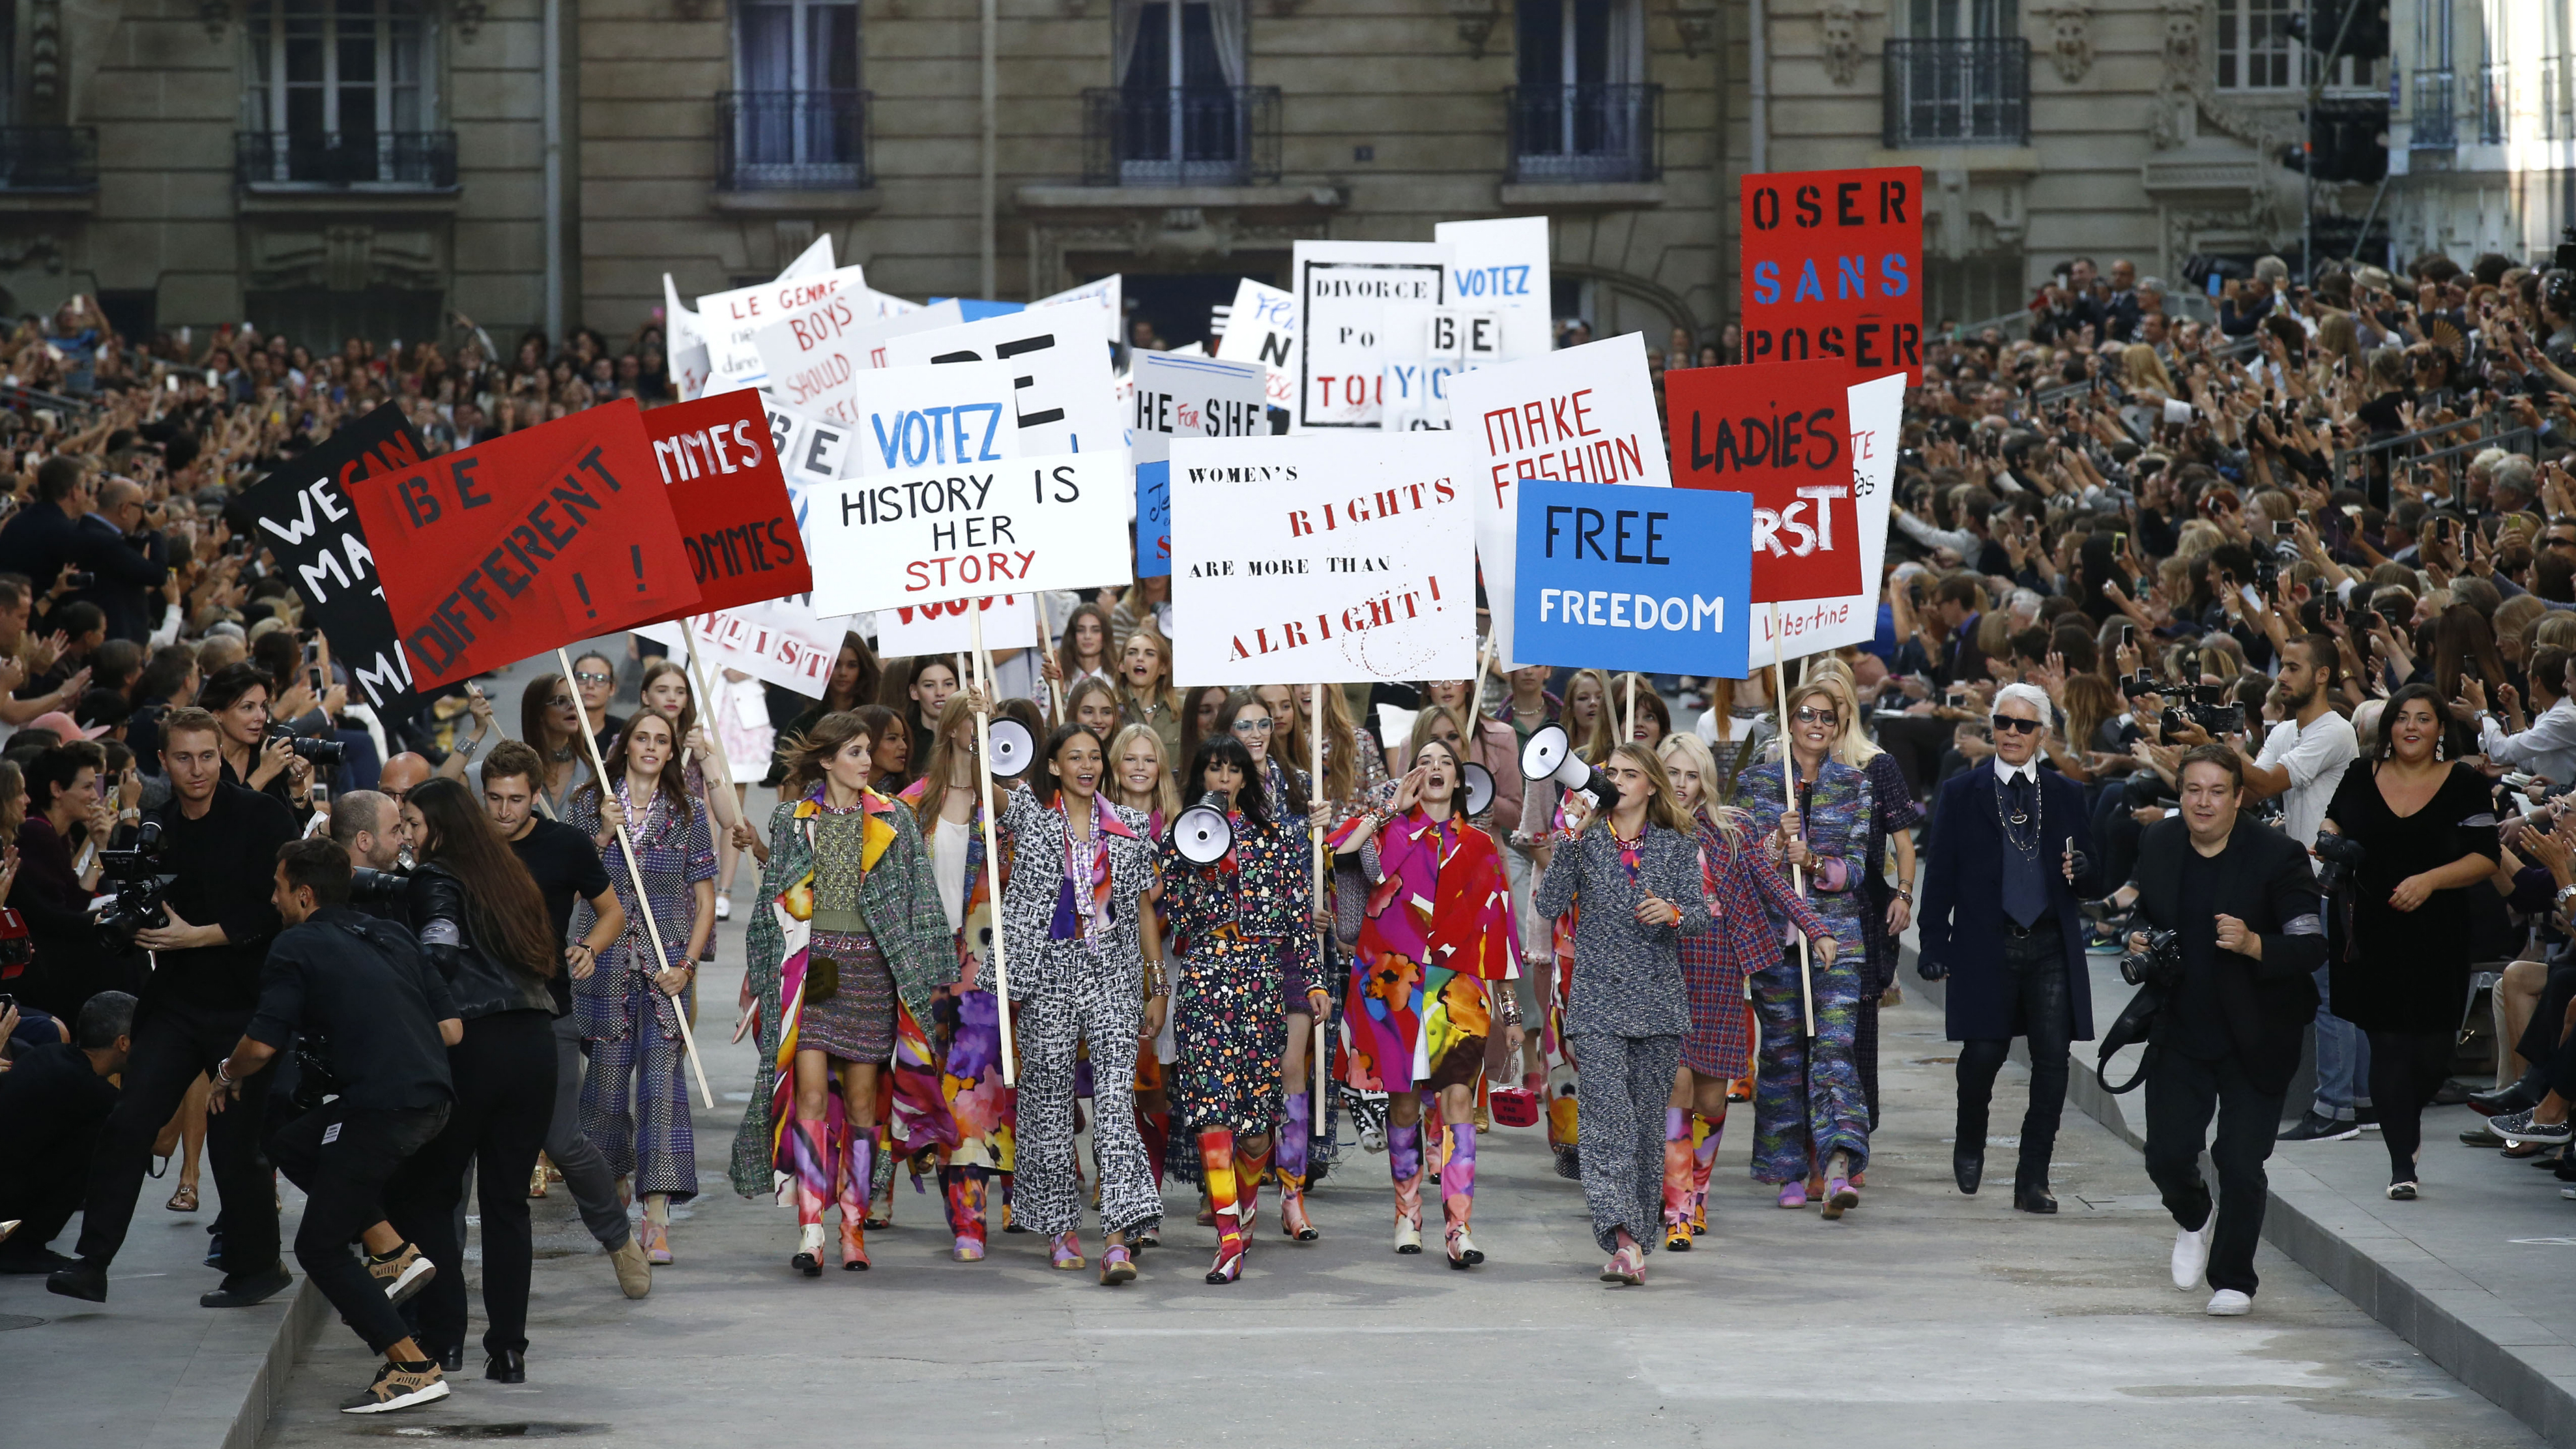 chanel spring 2015 paris fashion week protest